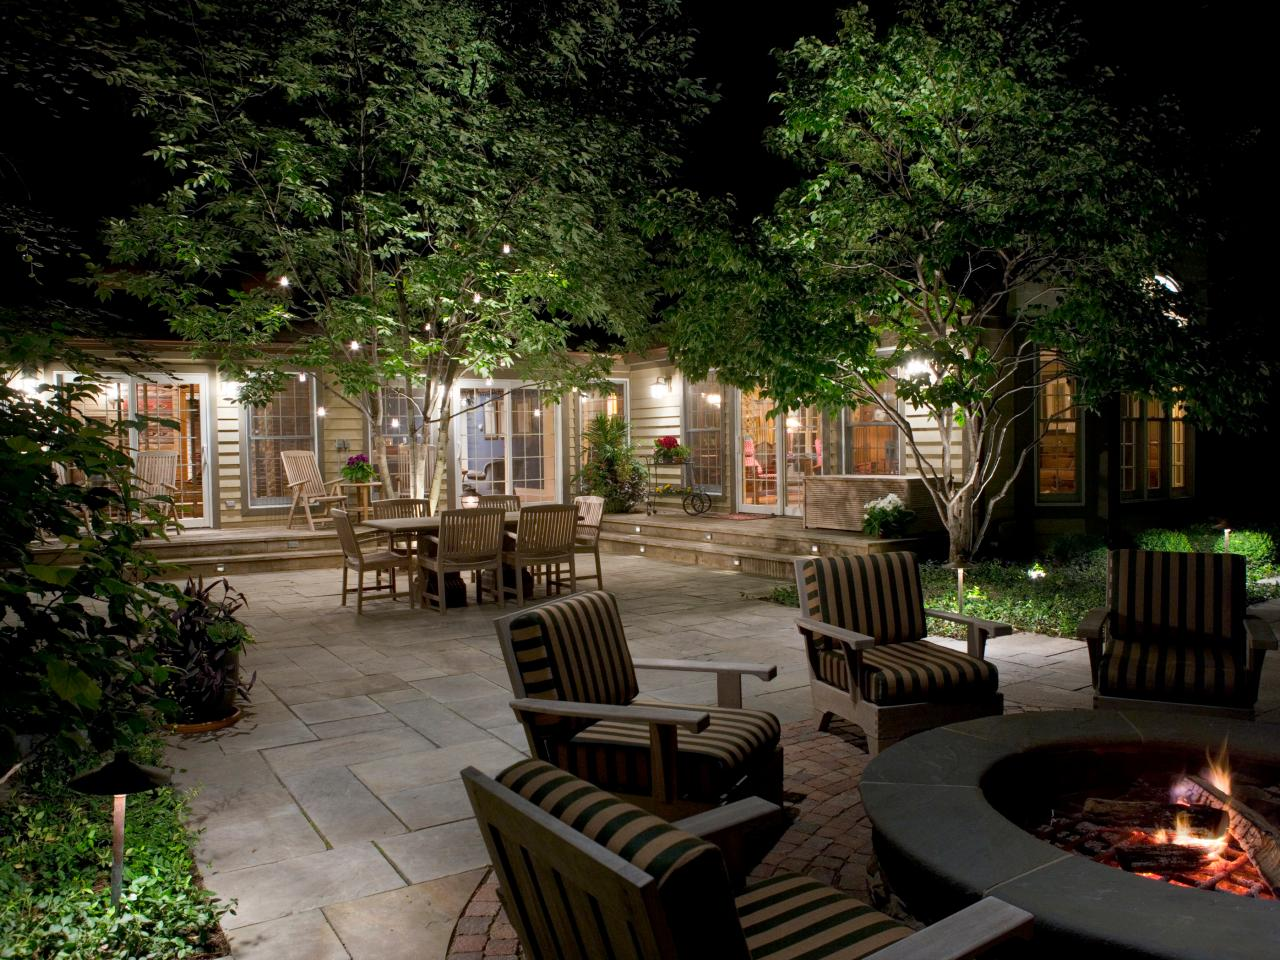 Springtown-Fort Worth TX Landscape Designs & Outdoor Living Areas-We offer Landscape Design, Outdoor Patios & Pergolas, Outdoor Living Spaces, Stonescapes, Residential & Commercial Landscaping, Irrigation Installation & Repairs, Drainage Systems, Landscape Lighting, Outdoor Living Spaces, Tree Service, Lawn Service, and more.